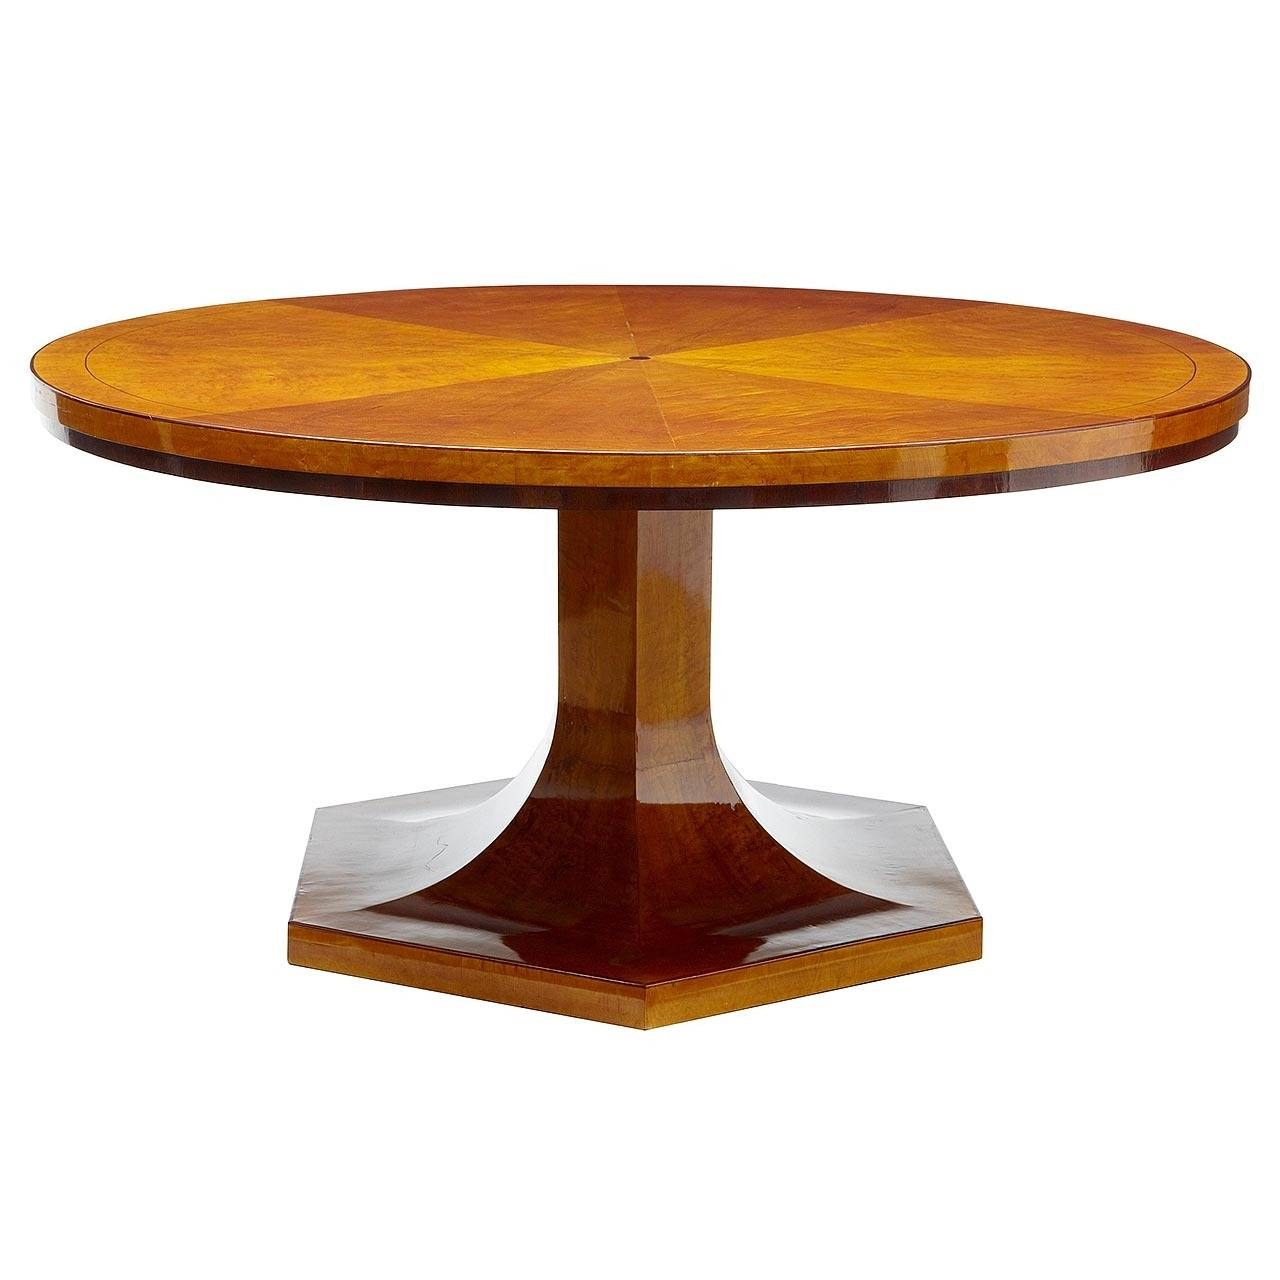 1920s Large Art Deco Birch Round Dining Table For Sale